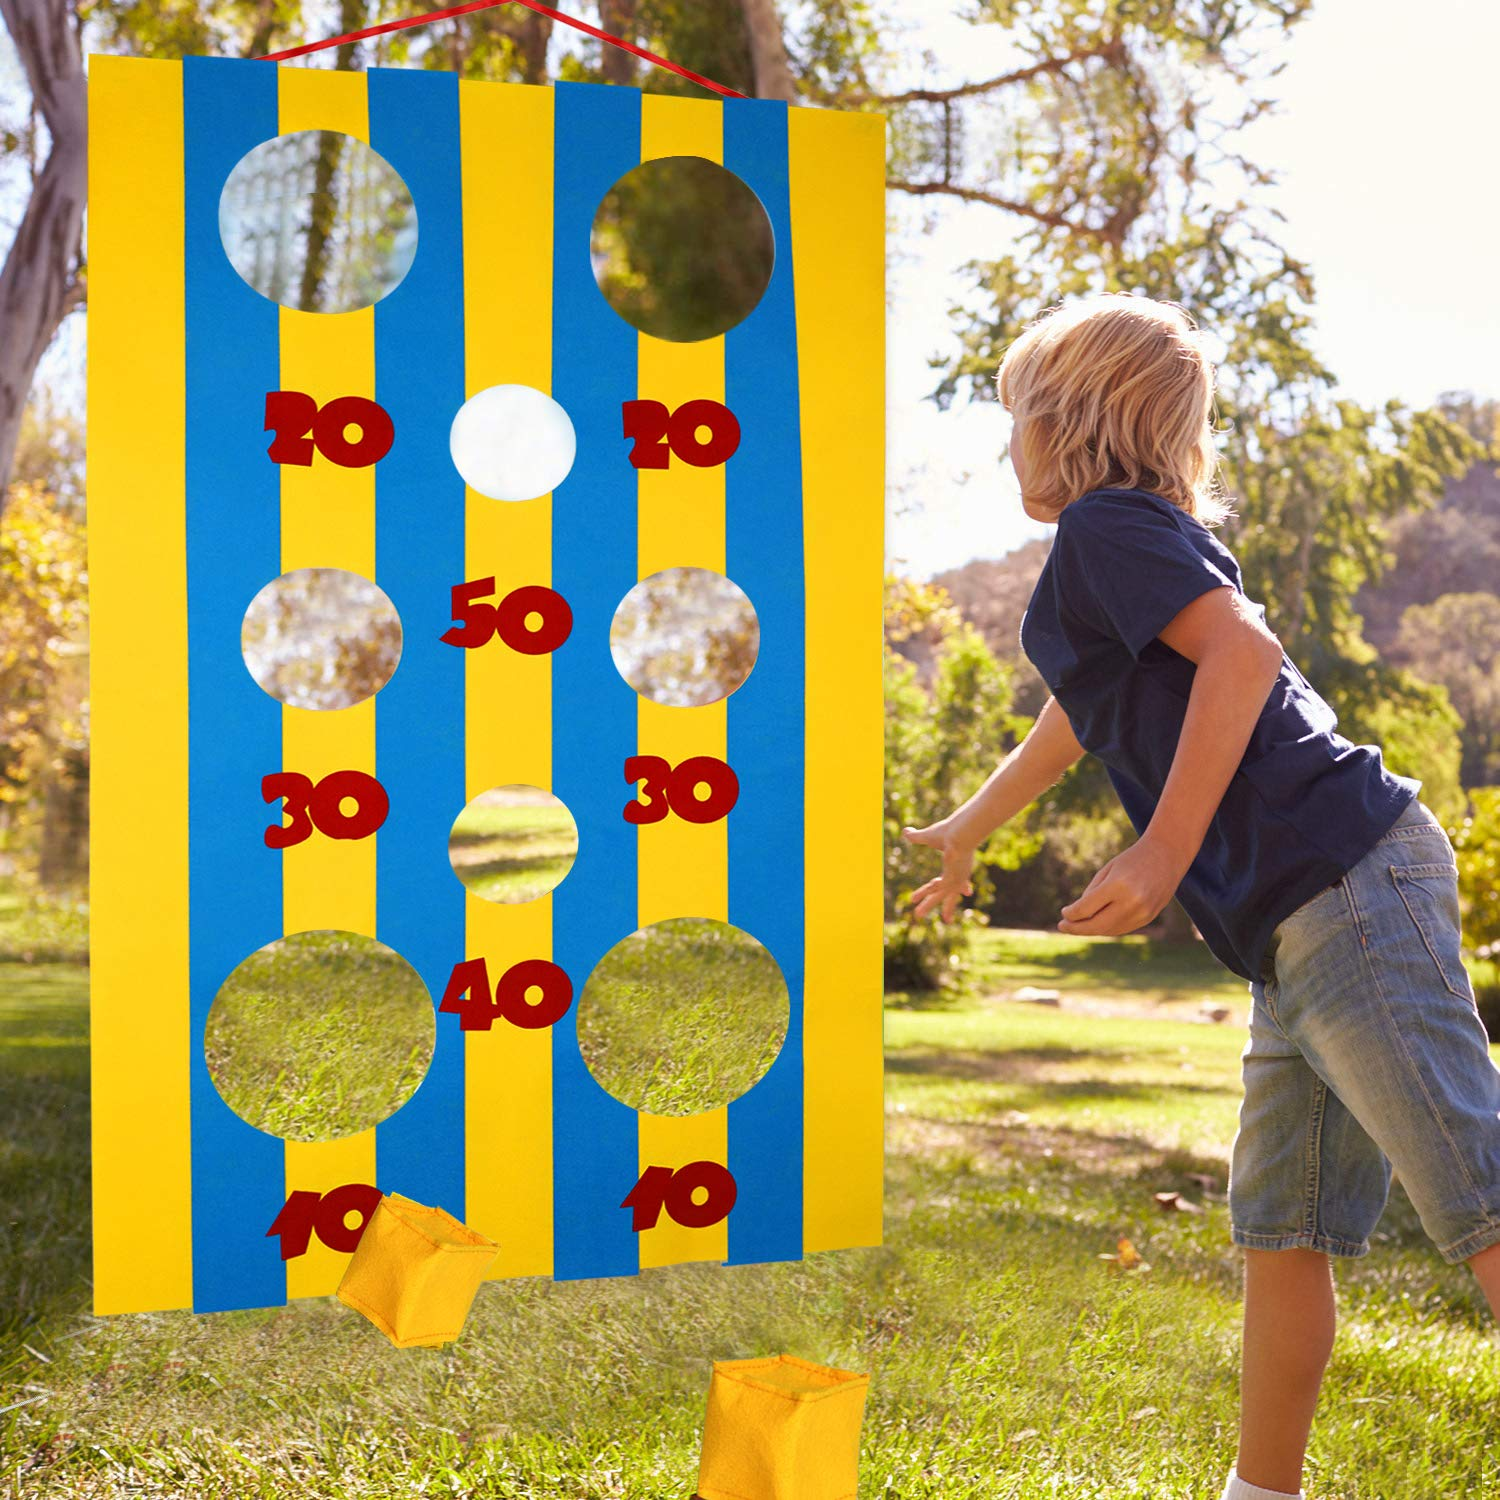 Felt Banner Toss Game for Kids and Adults in Carnival Party Activities OOTSR Carnival Toss Games with 8 Bean Bag for Carnival Decorations and Suppliers